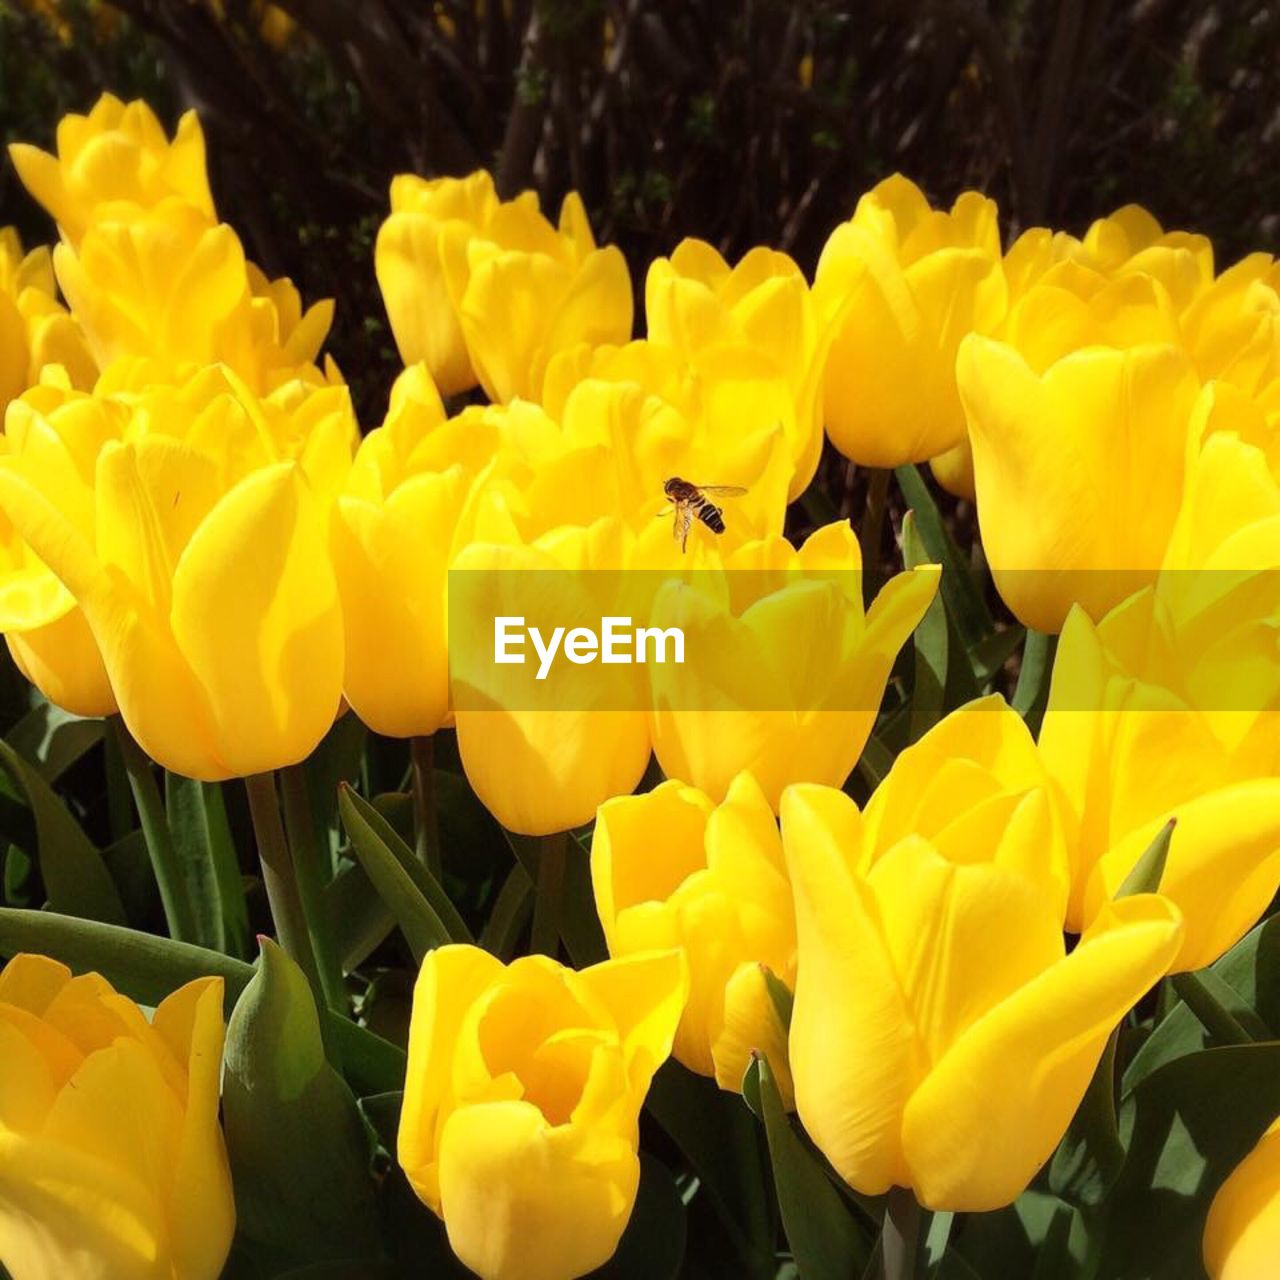 flower, yellow, petal, fragility, nature, beauty in nature, growth, freshness, plant, flower head, outdoors, blooming, no people, day, close-up